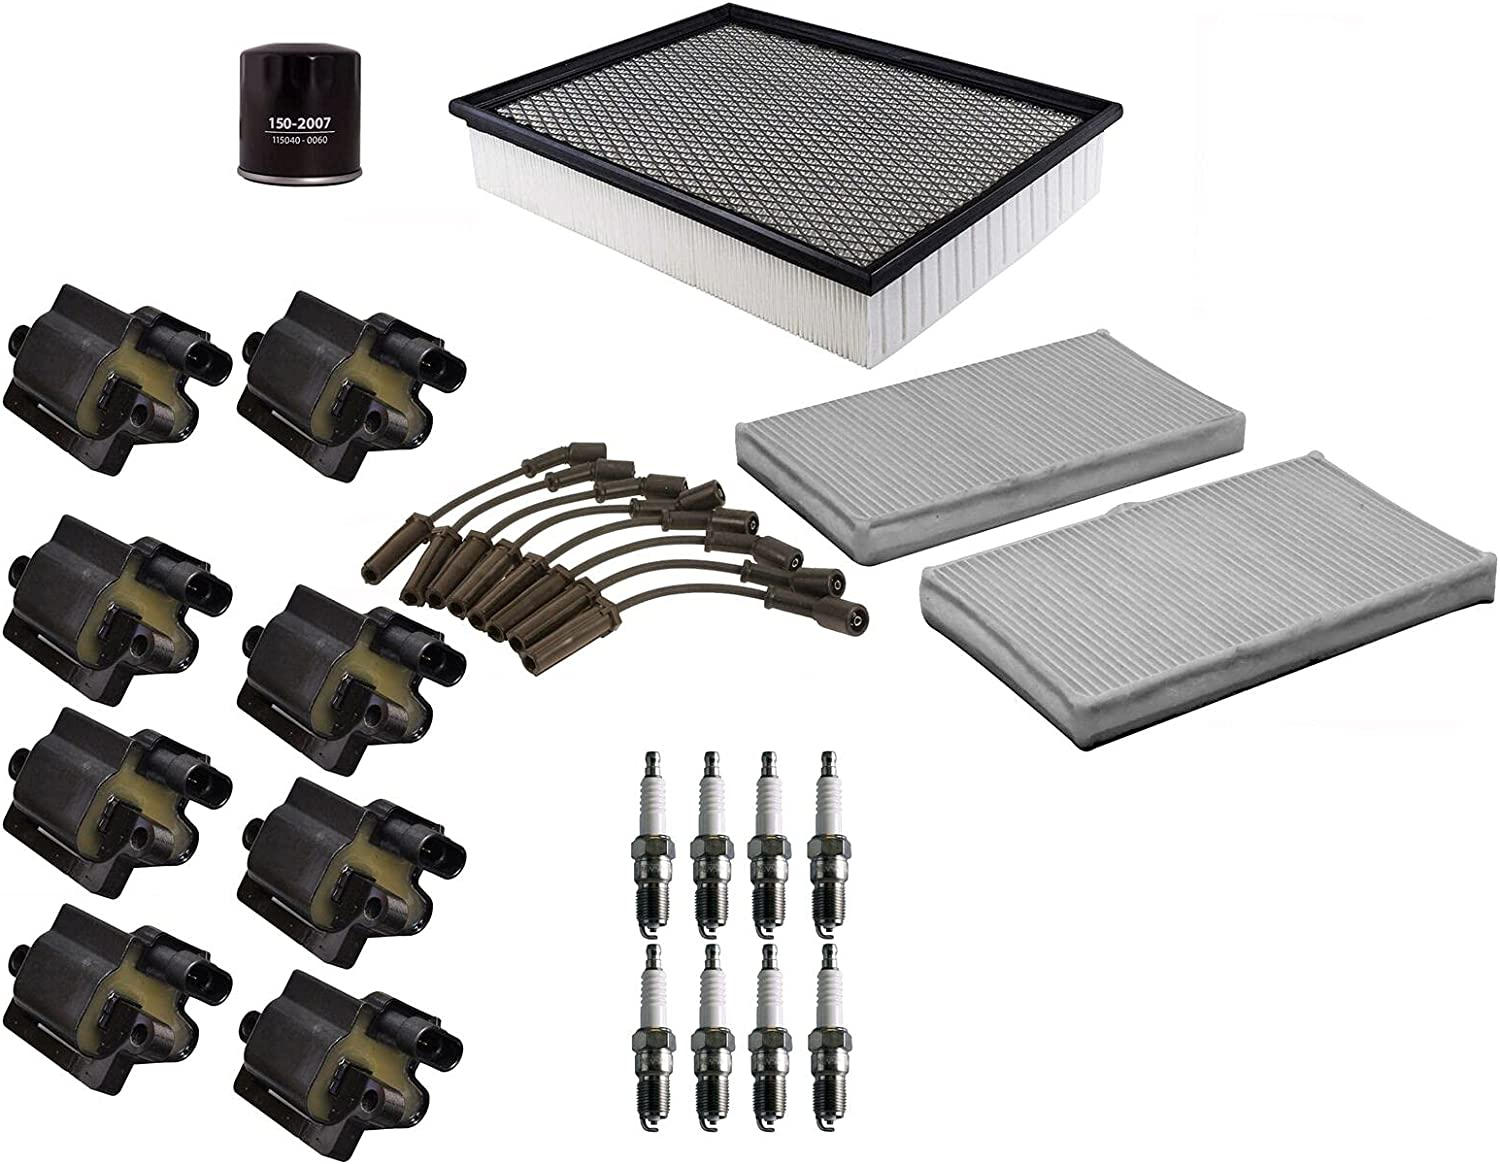 Animer and price revision Filters Superlatite Wires 8 Ignition Coils Spark Up Tune kit Plugs Compati